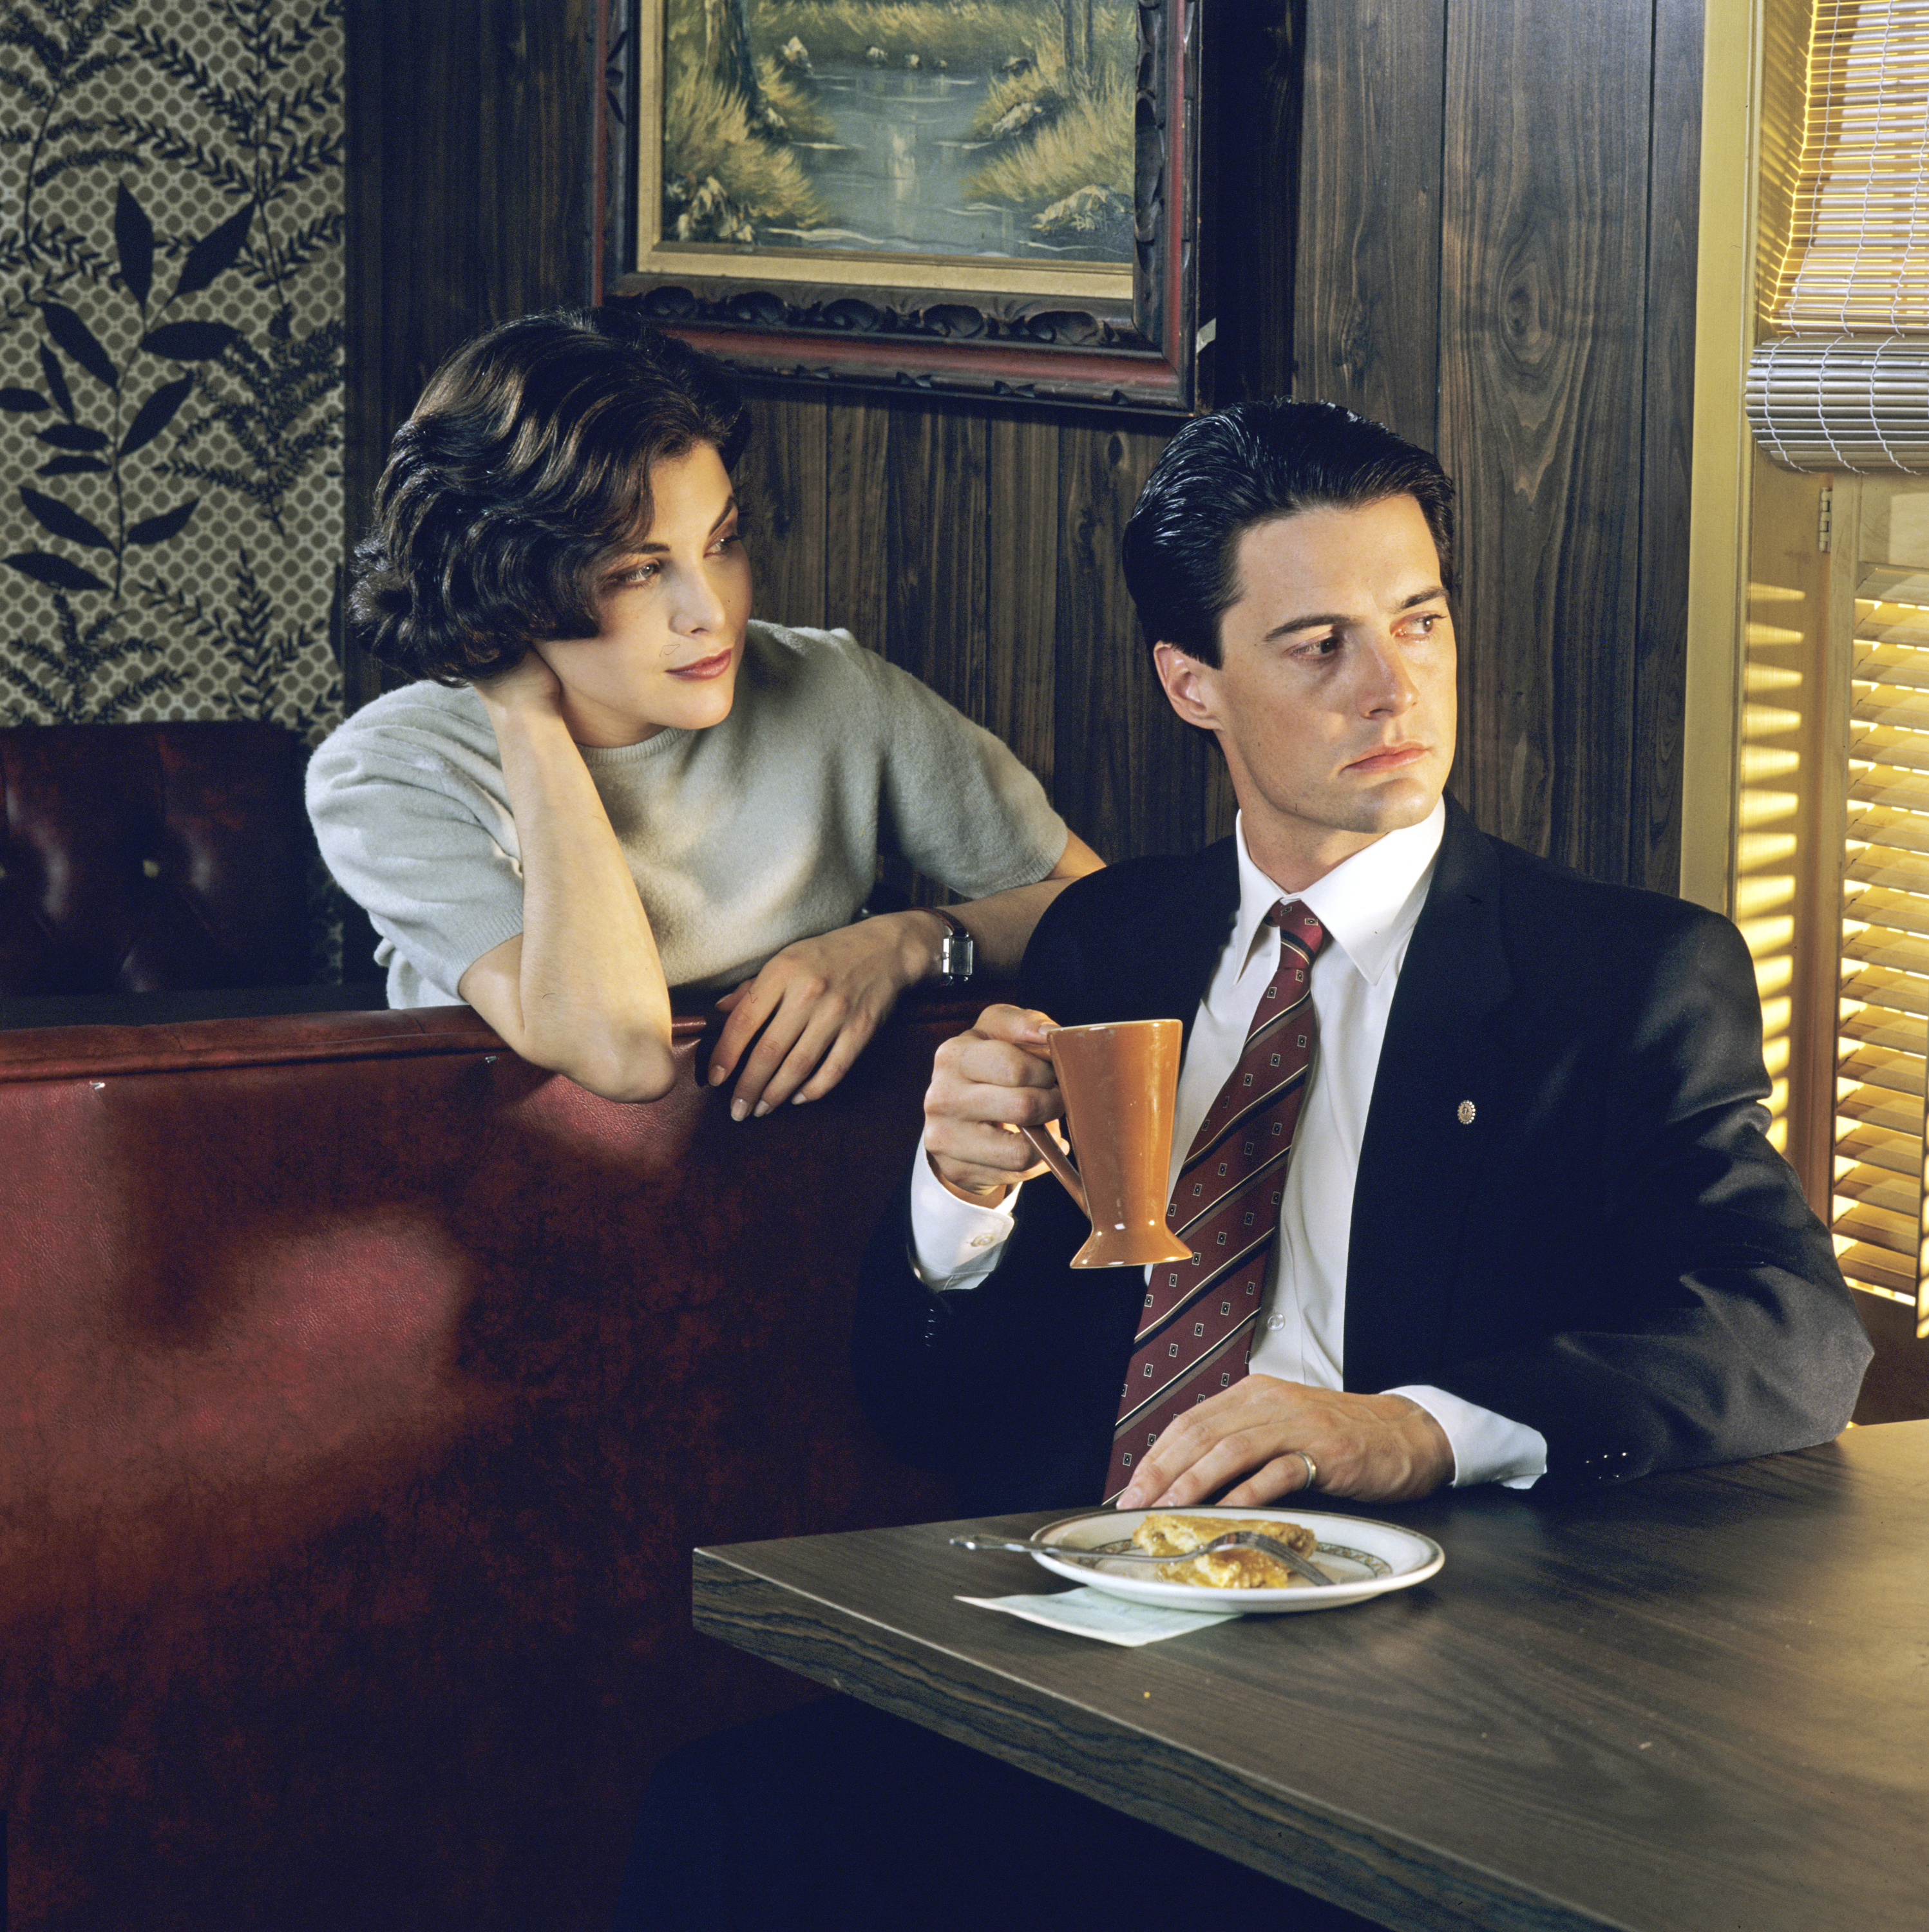 The first season of 'Twin Peaks' aired in 1990.